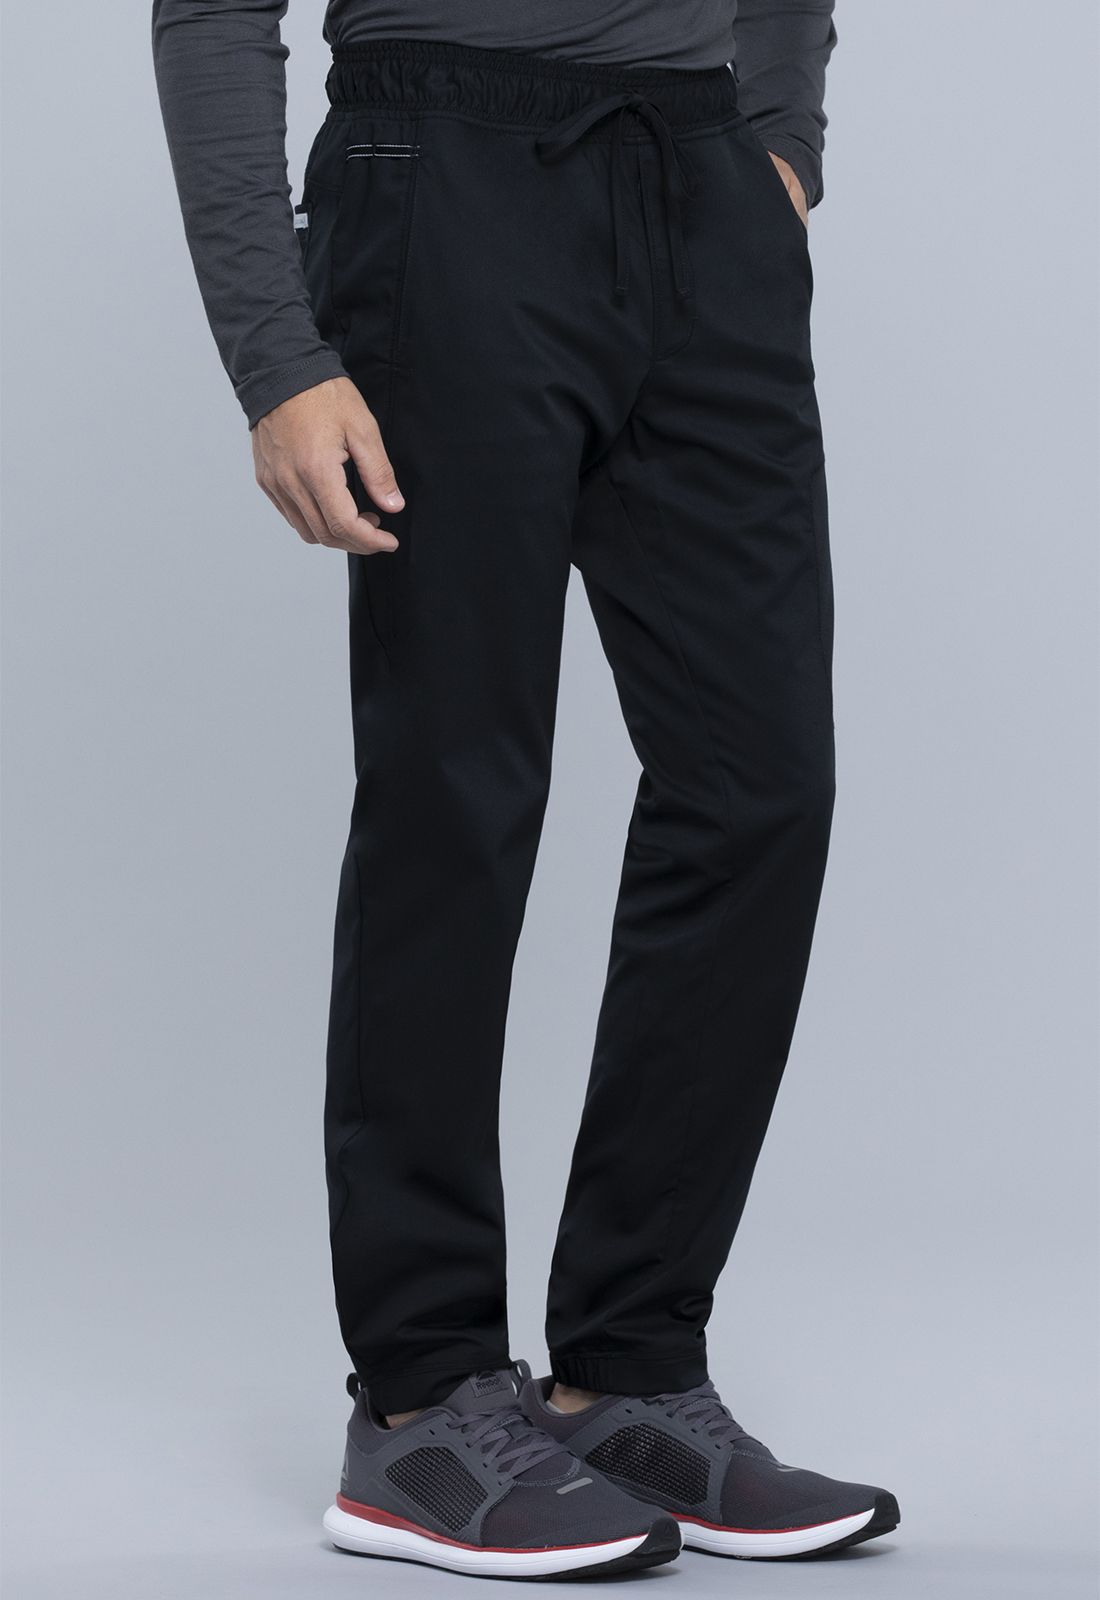 https://medcloth.by/images/stories/virtuemart/product/ww012-black-3.jpg